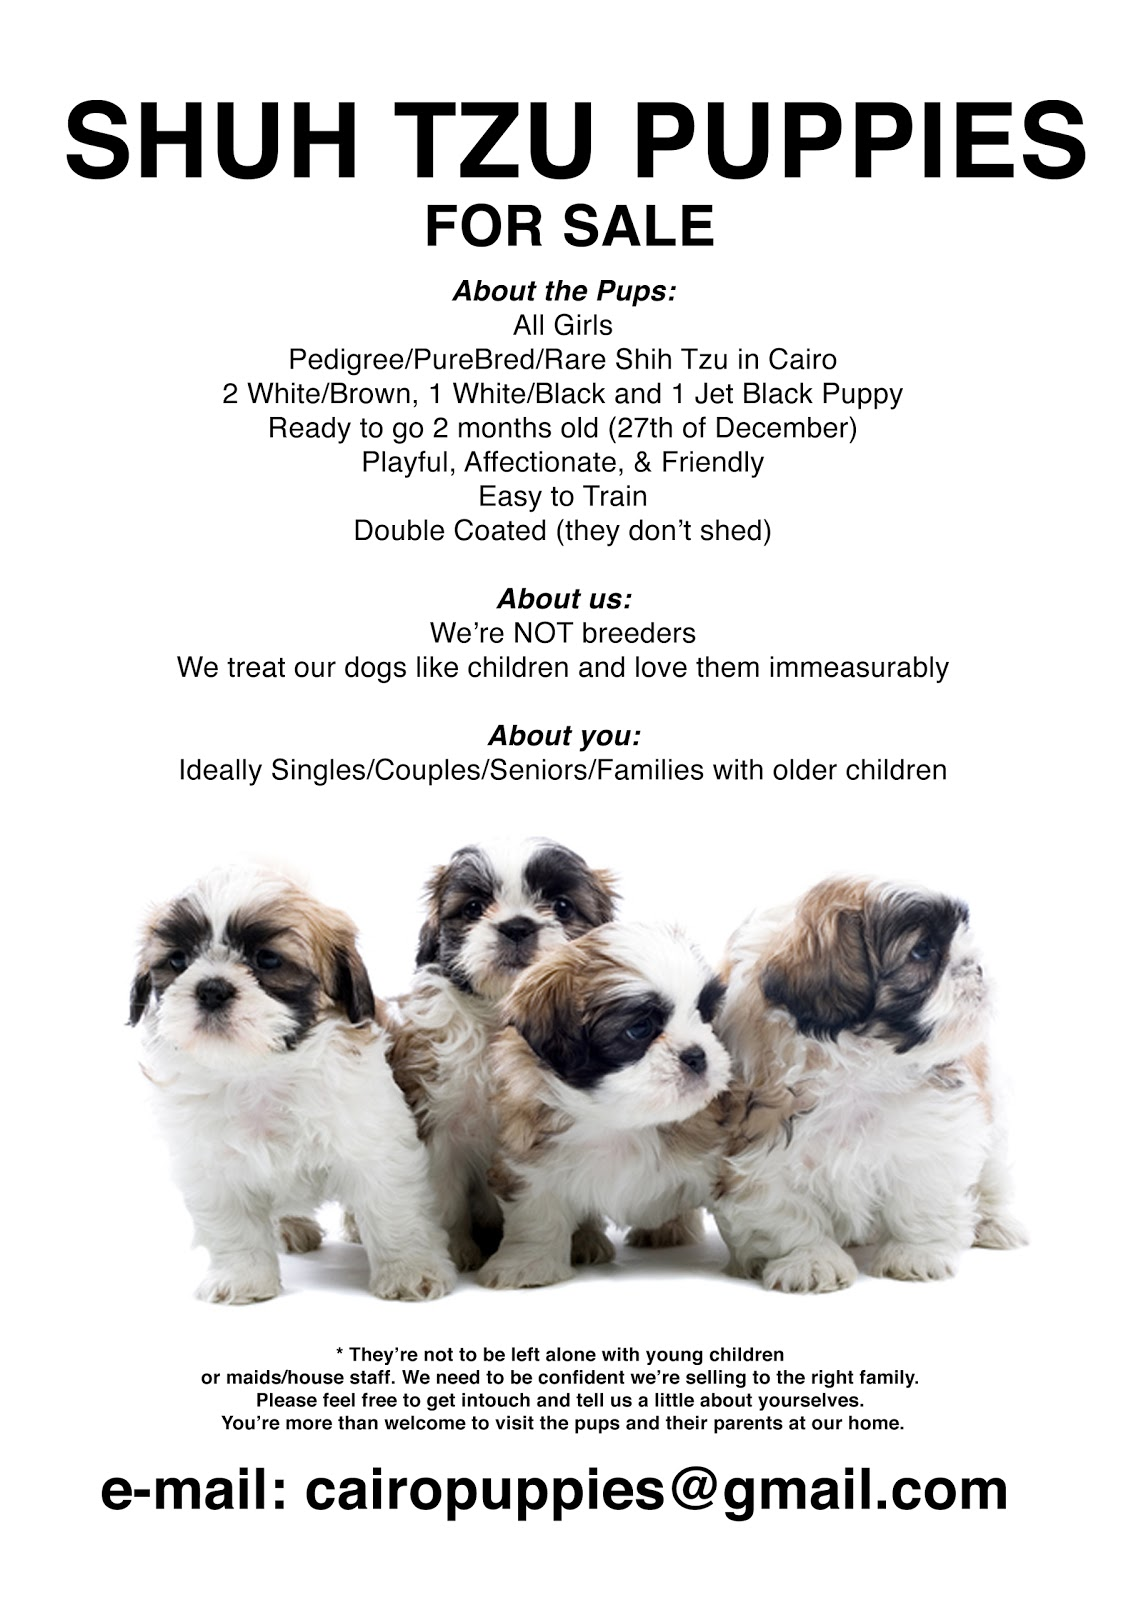 puppy for sale flyer templates - shih tzu puppies for sale flyer info